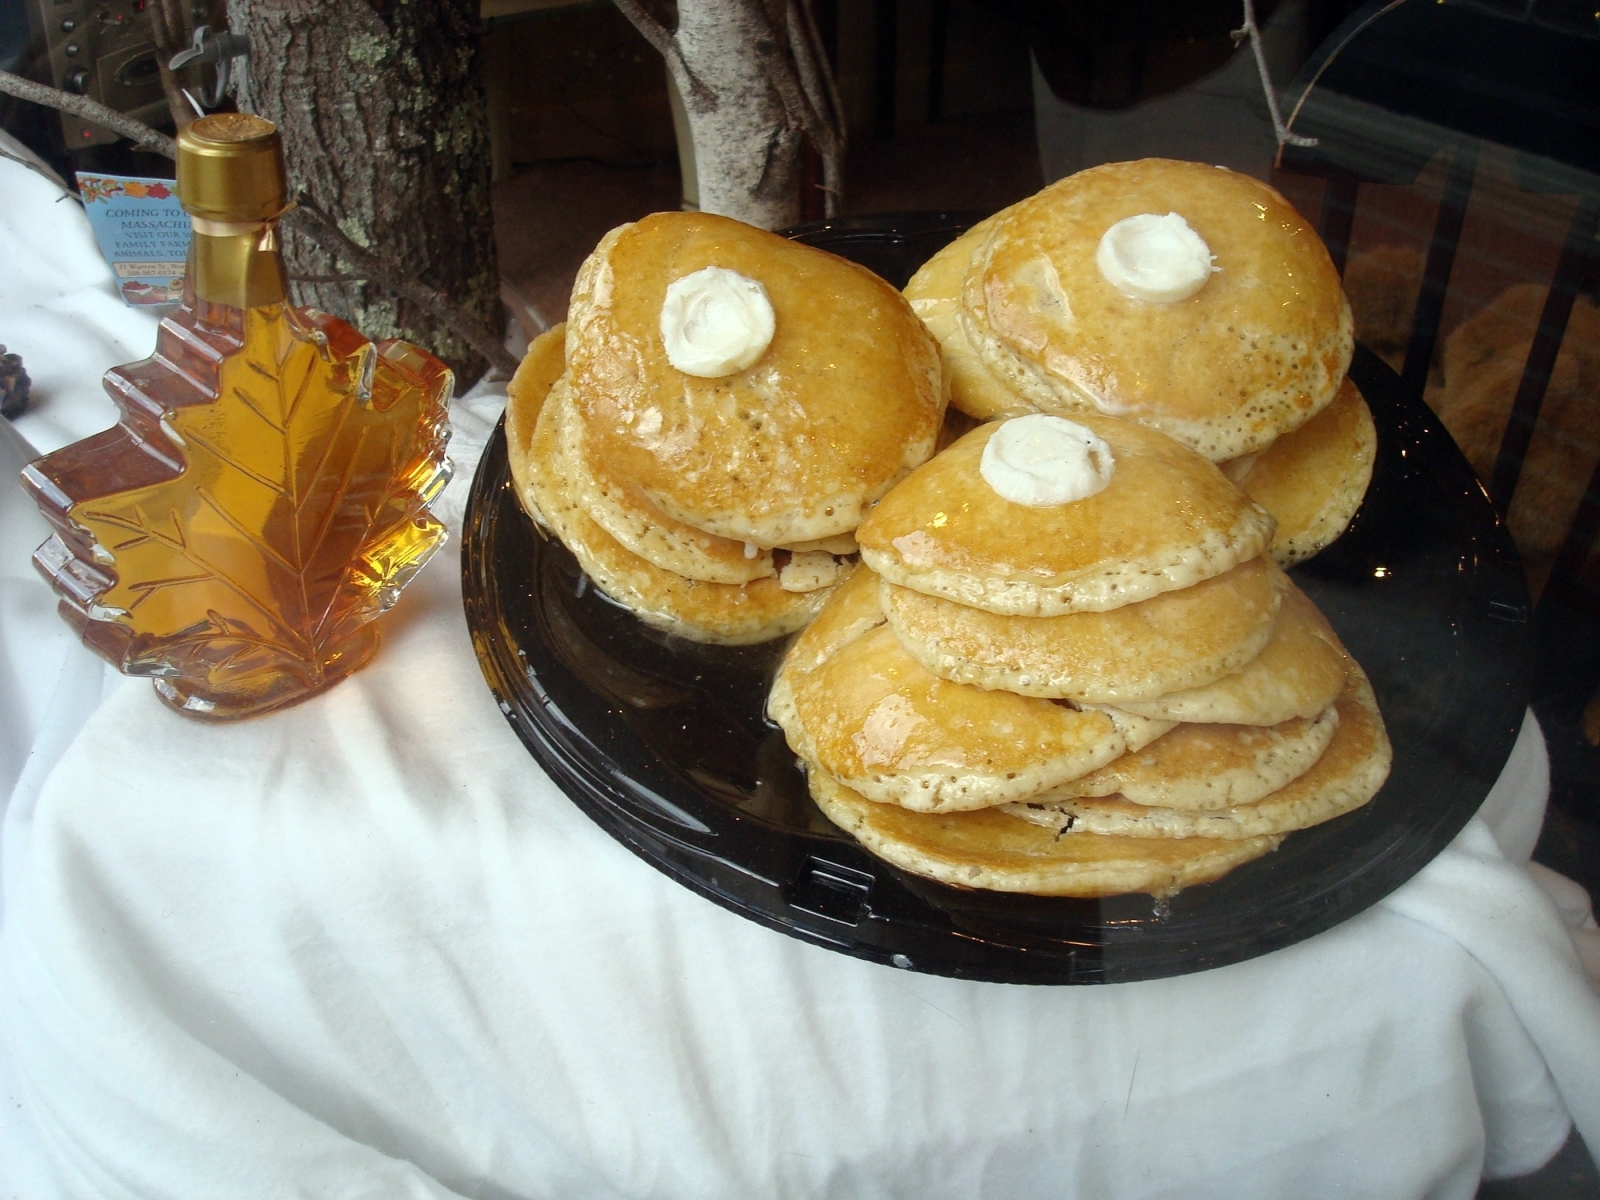 Maple syrup and pancakes